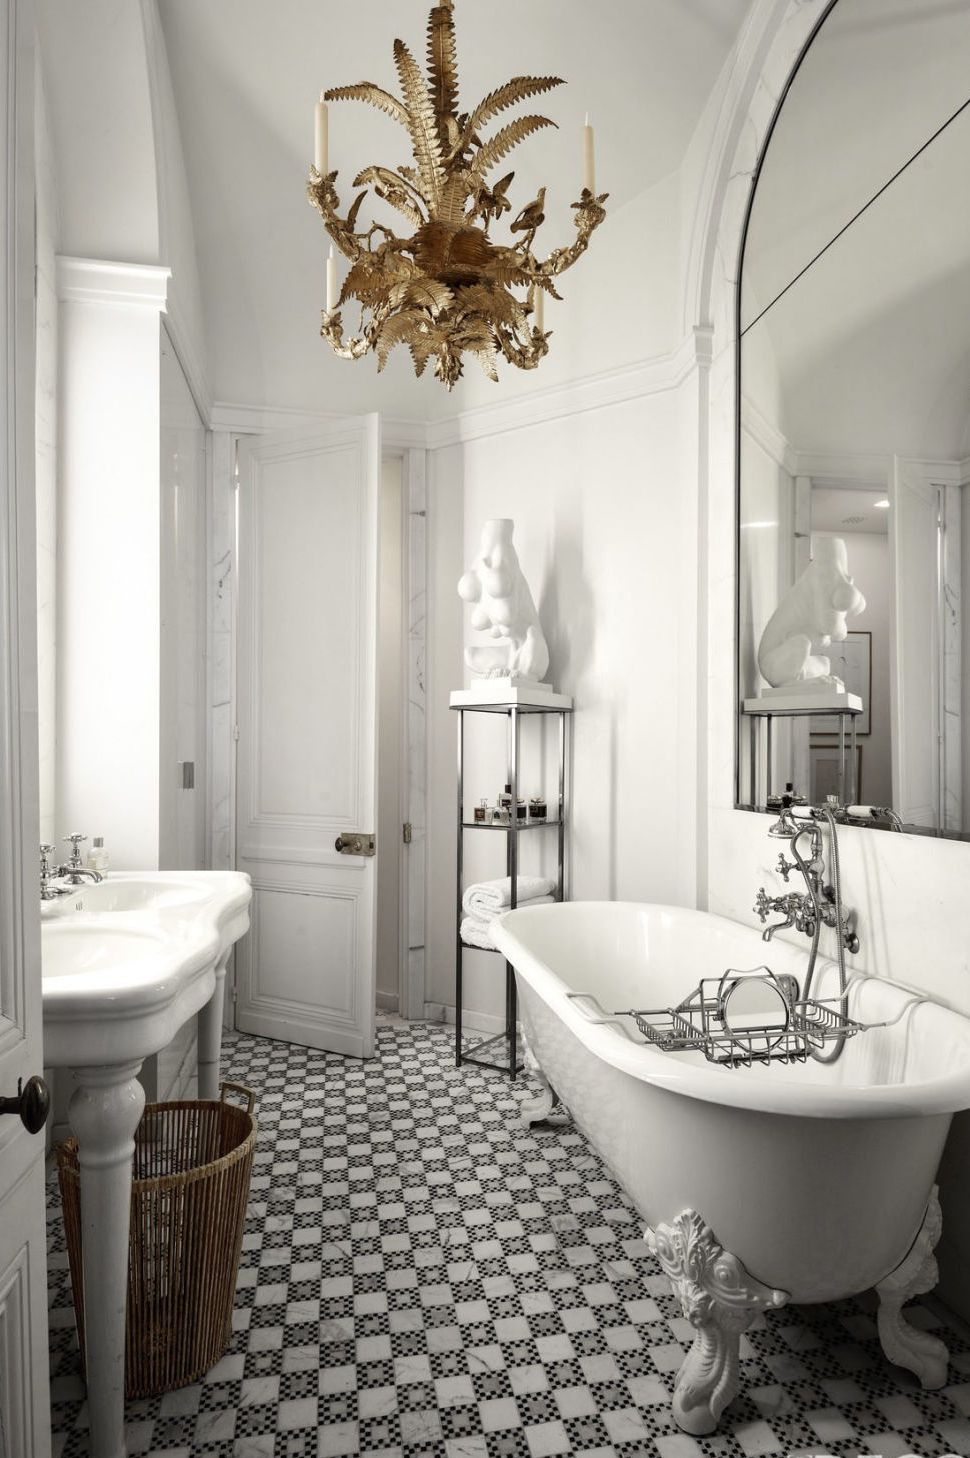 25 Best Modern Bathrooms - Luxe Bathroom Ideas with Modern Design